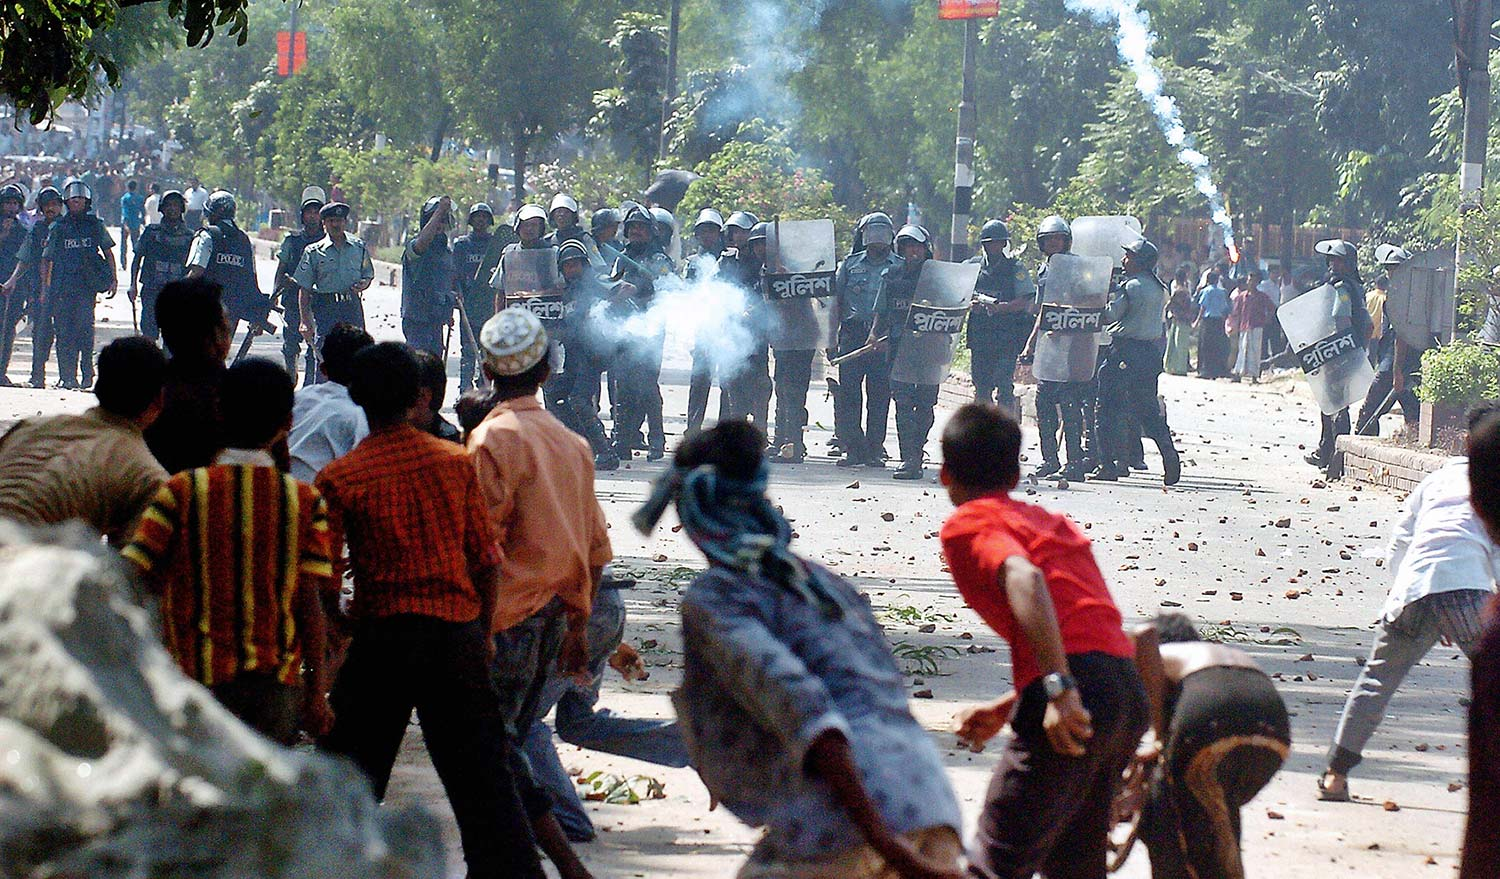 Bangladeshi policemen fire tear gas. Getty Images/Farjana K. Godhuly.